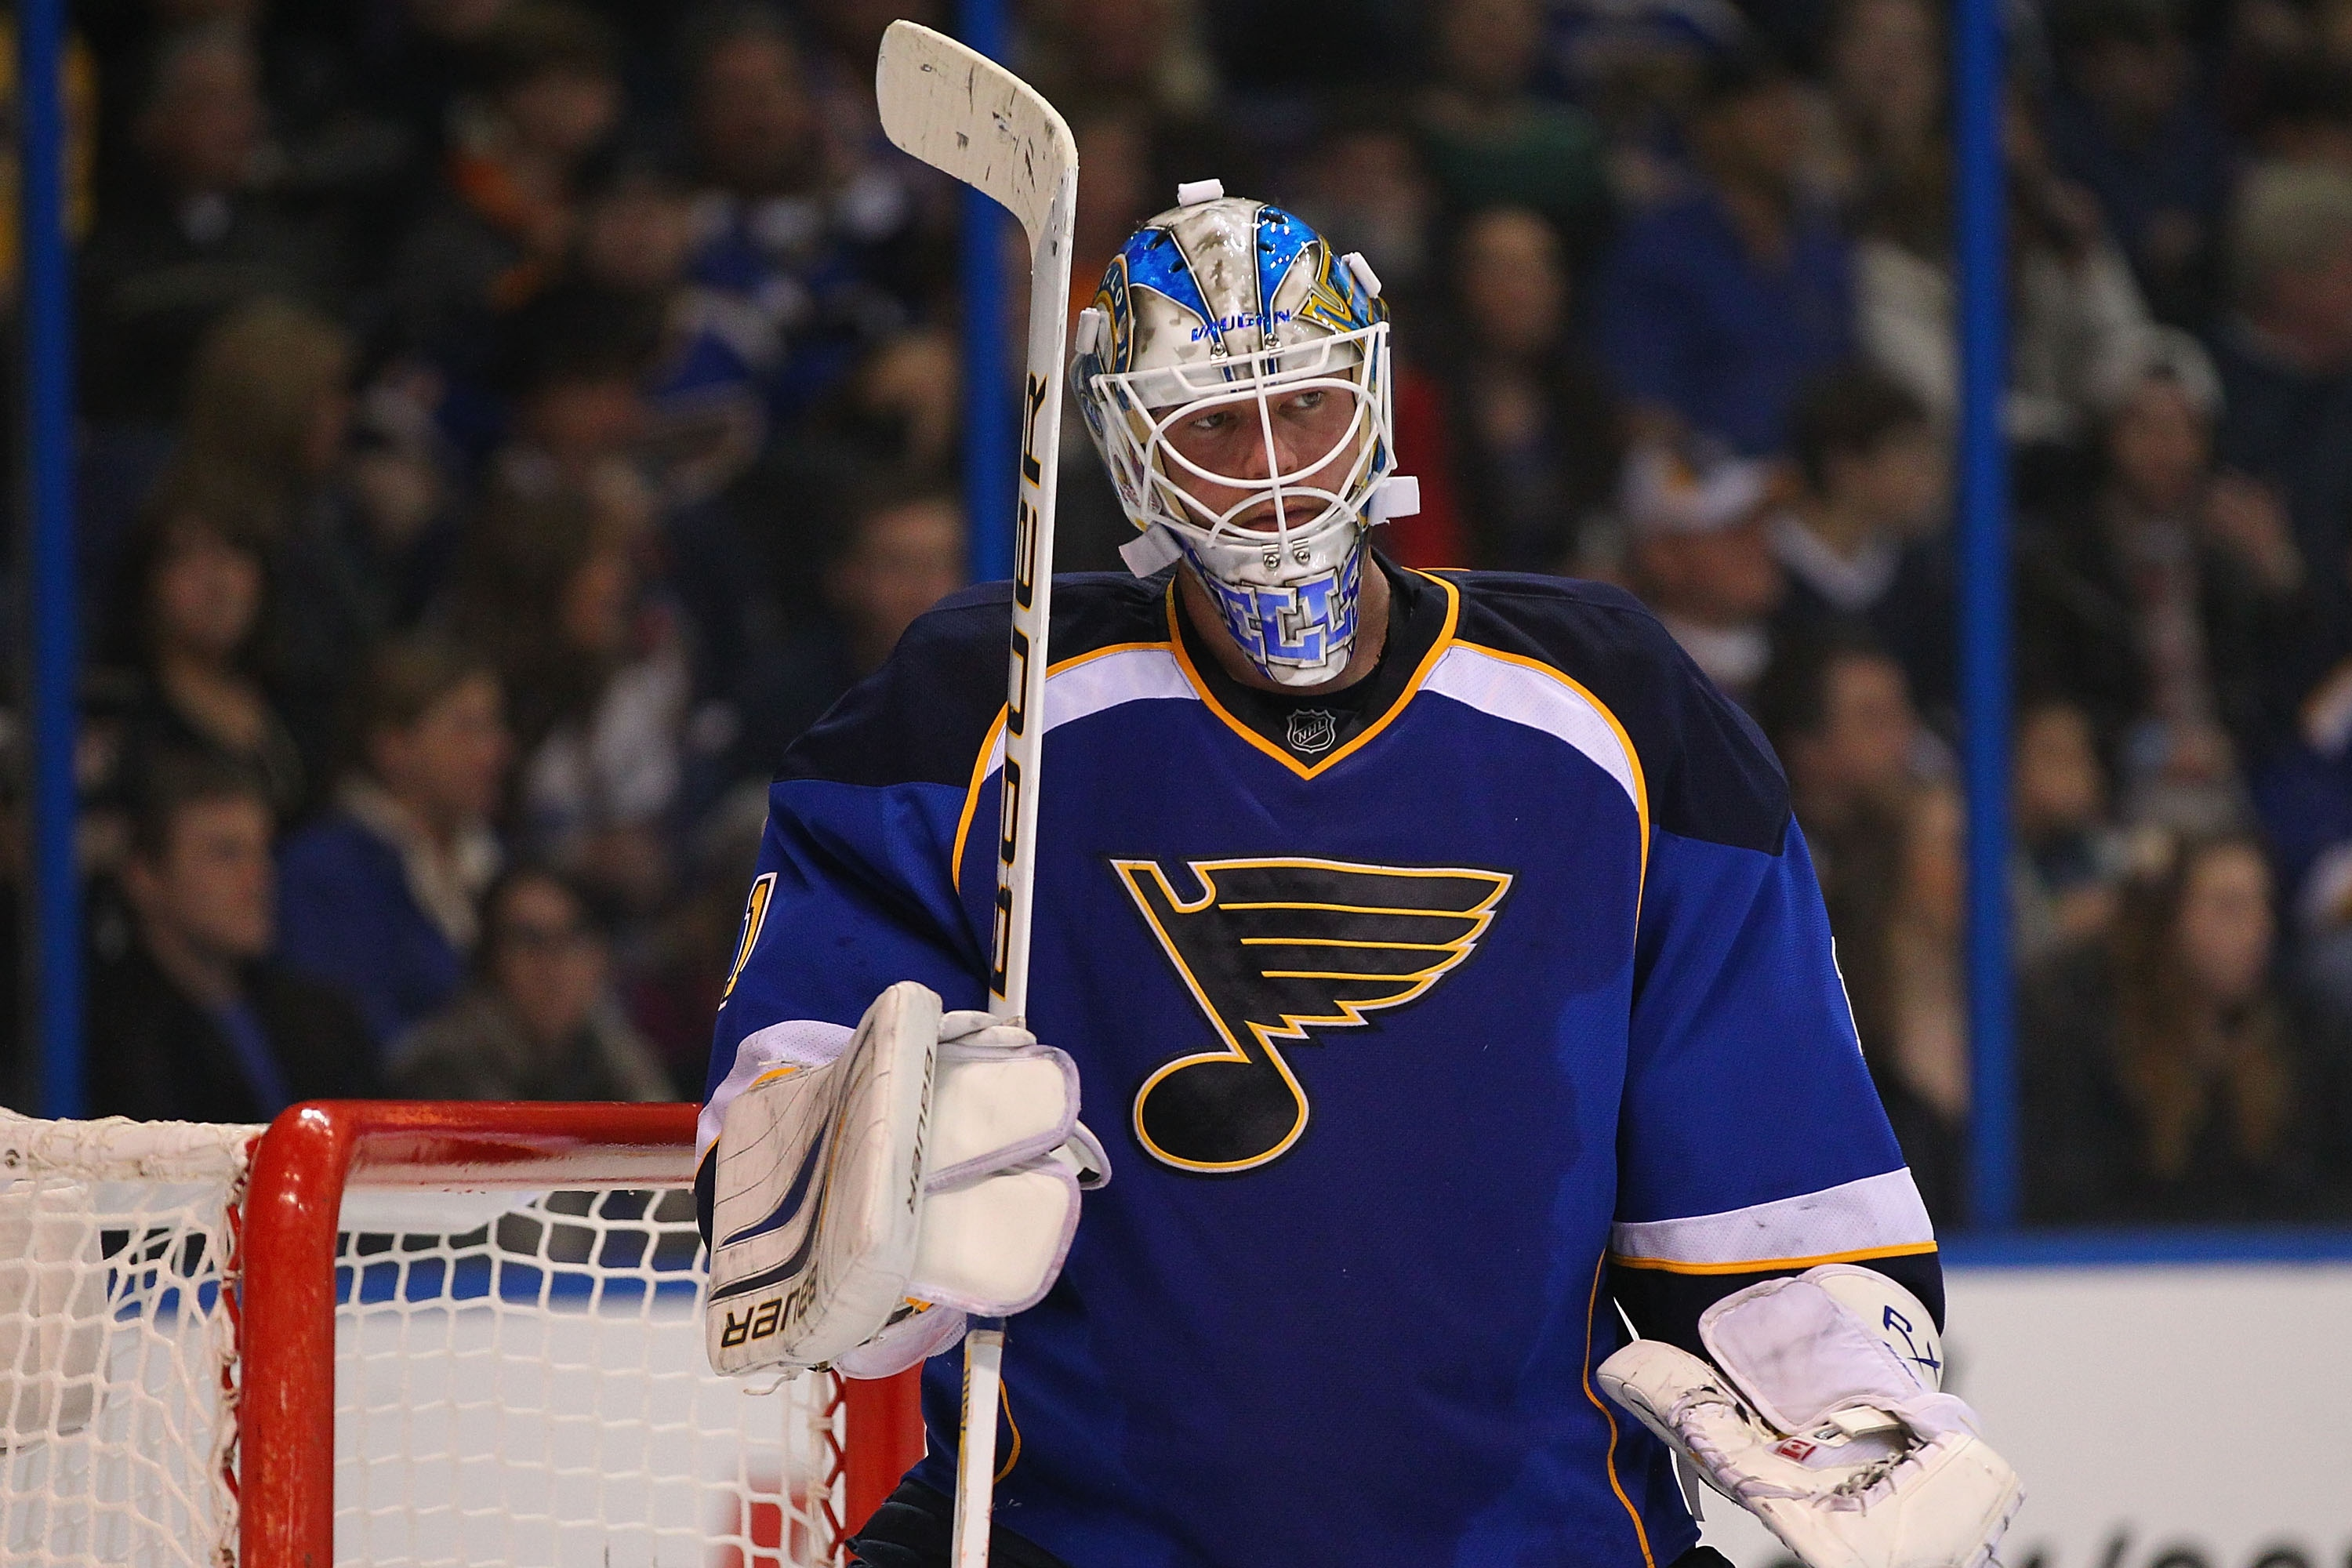 Blues goalie Brian Elliott has floundered after a breakout year last season. (Getty)